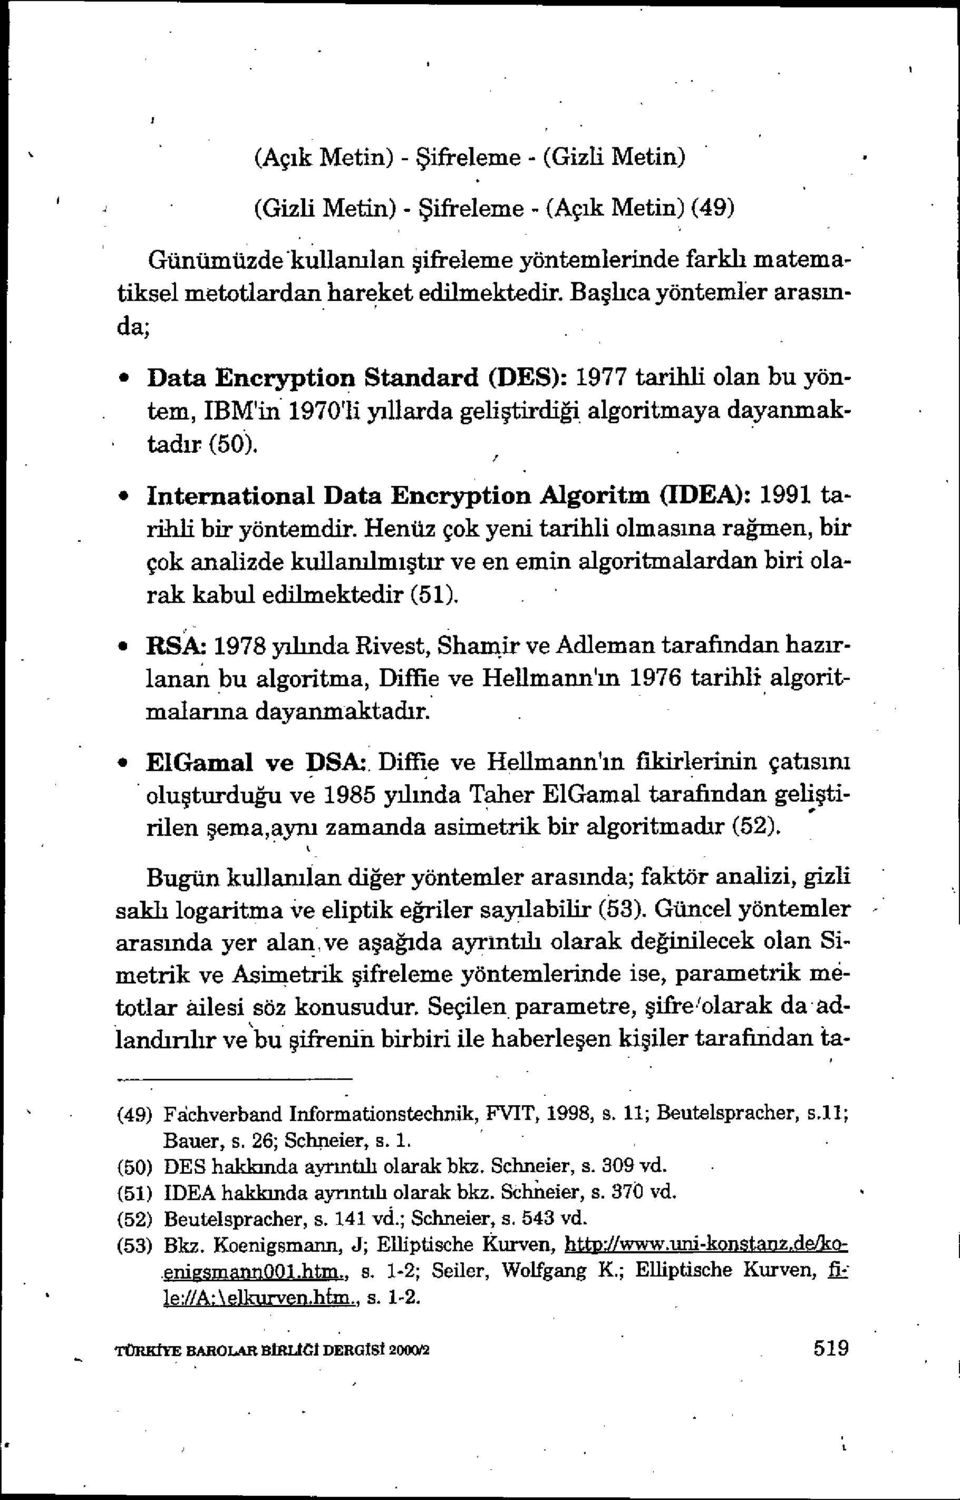 İnternational Data Encryption Algoritm (IDEA): 1991 tarihli bir yöntemdir.